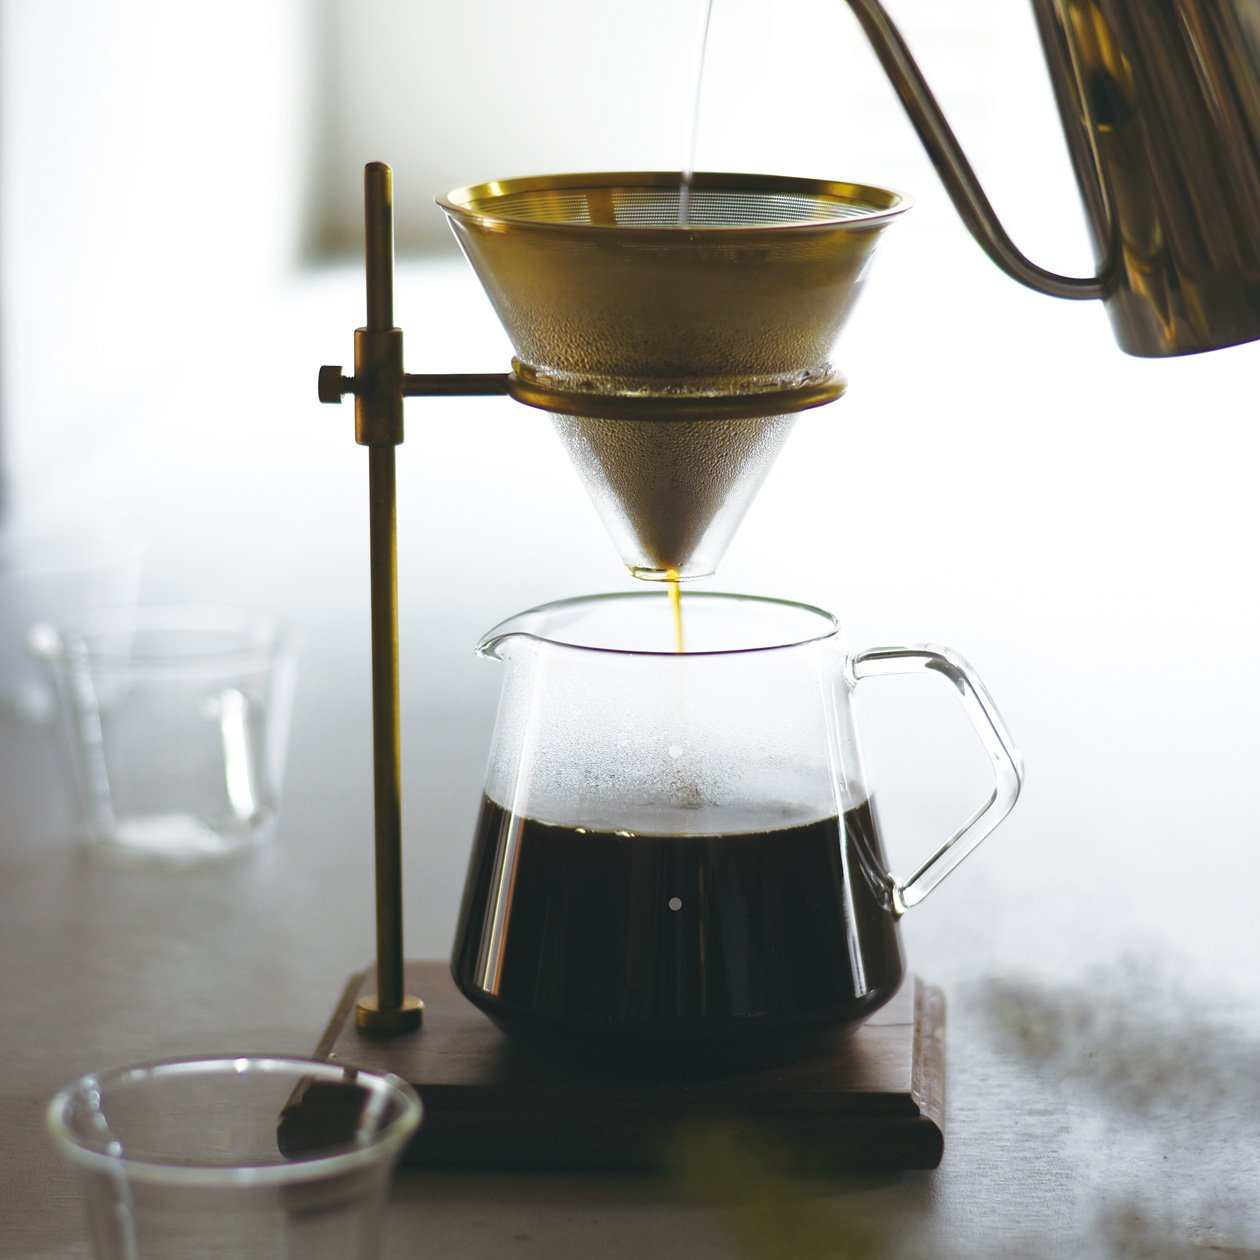 kinto-products-slow-coffee-style-specialty-lifestyle-13_1440x